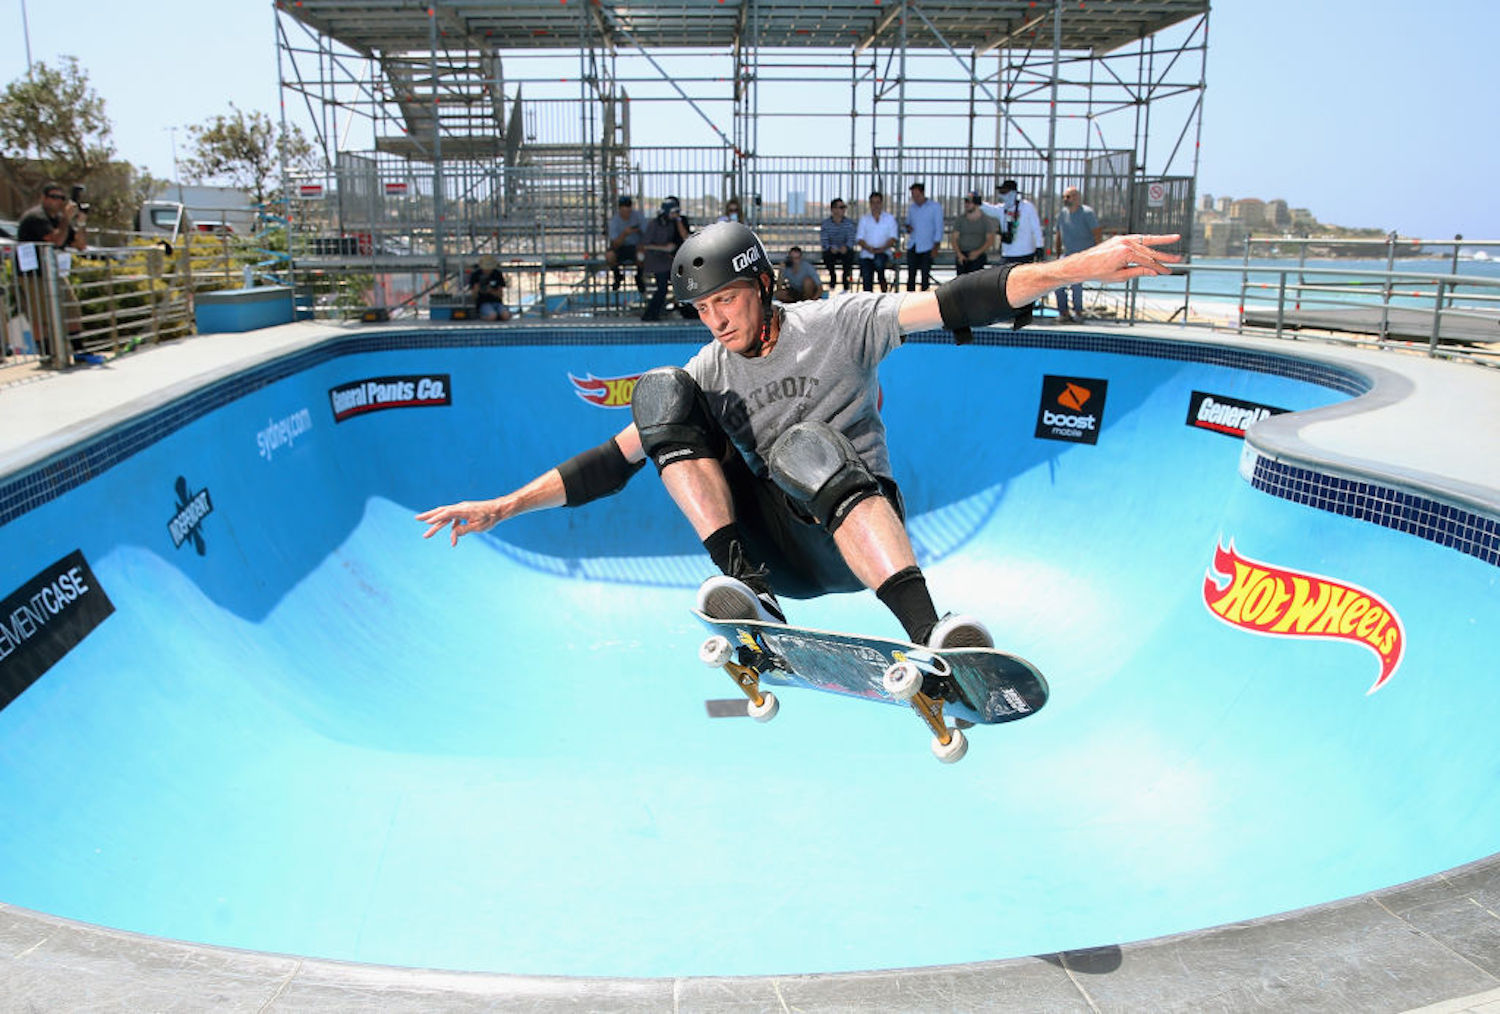 Tony Hawk is one of the most successful athletes and businessmen in the skating world, but he used to live off a $5-a-day allowance.